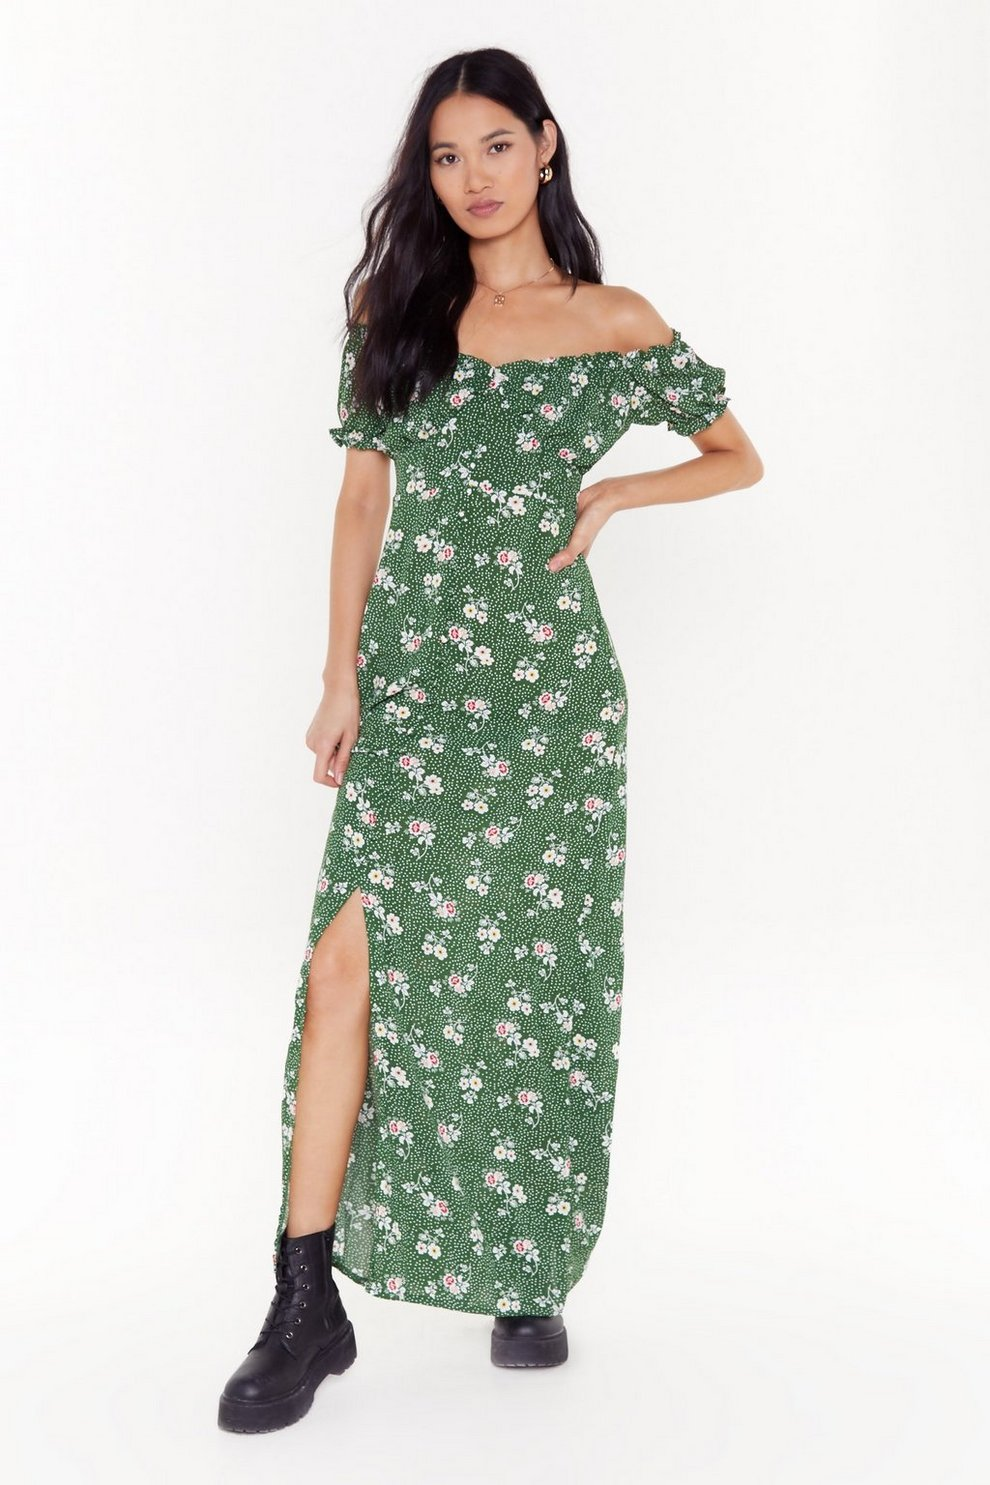 68a22627193a8 Flower Lips are Sealed Floral Maxi Dress